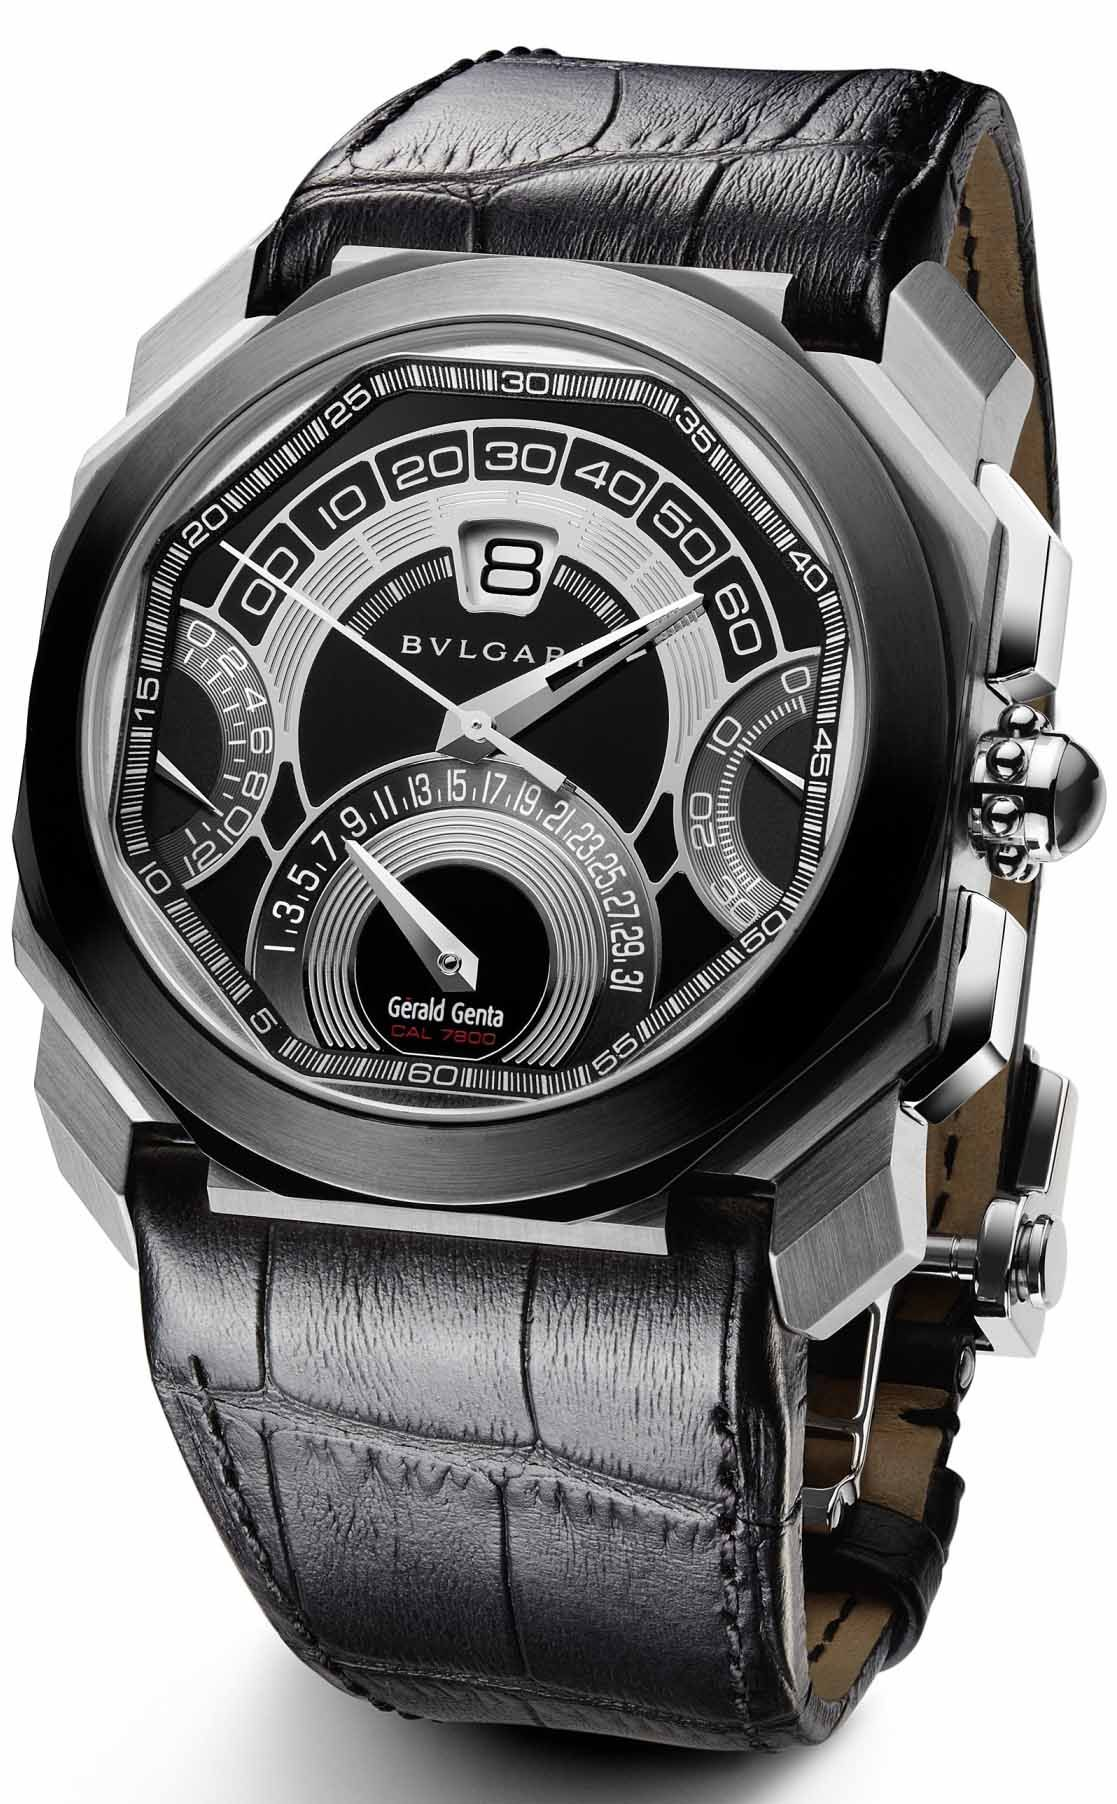 Bvlgari octo fashion pinterest bvlgari luxury watches and men